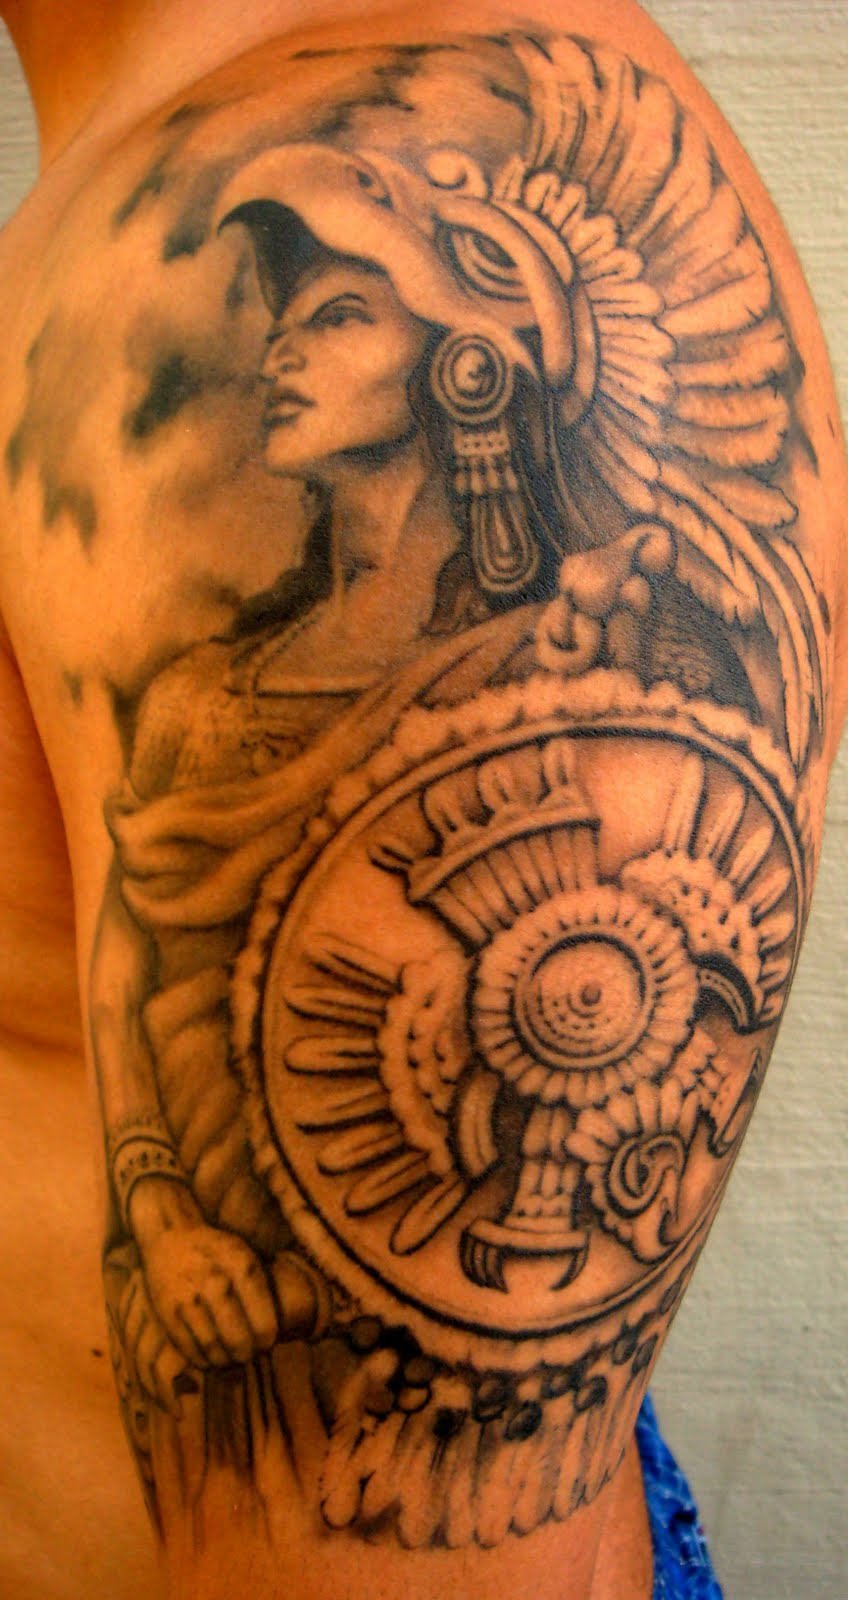 Tattoo Tradicional Mexicano